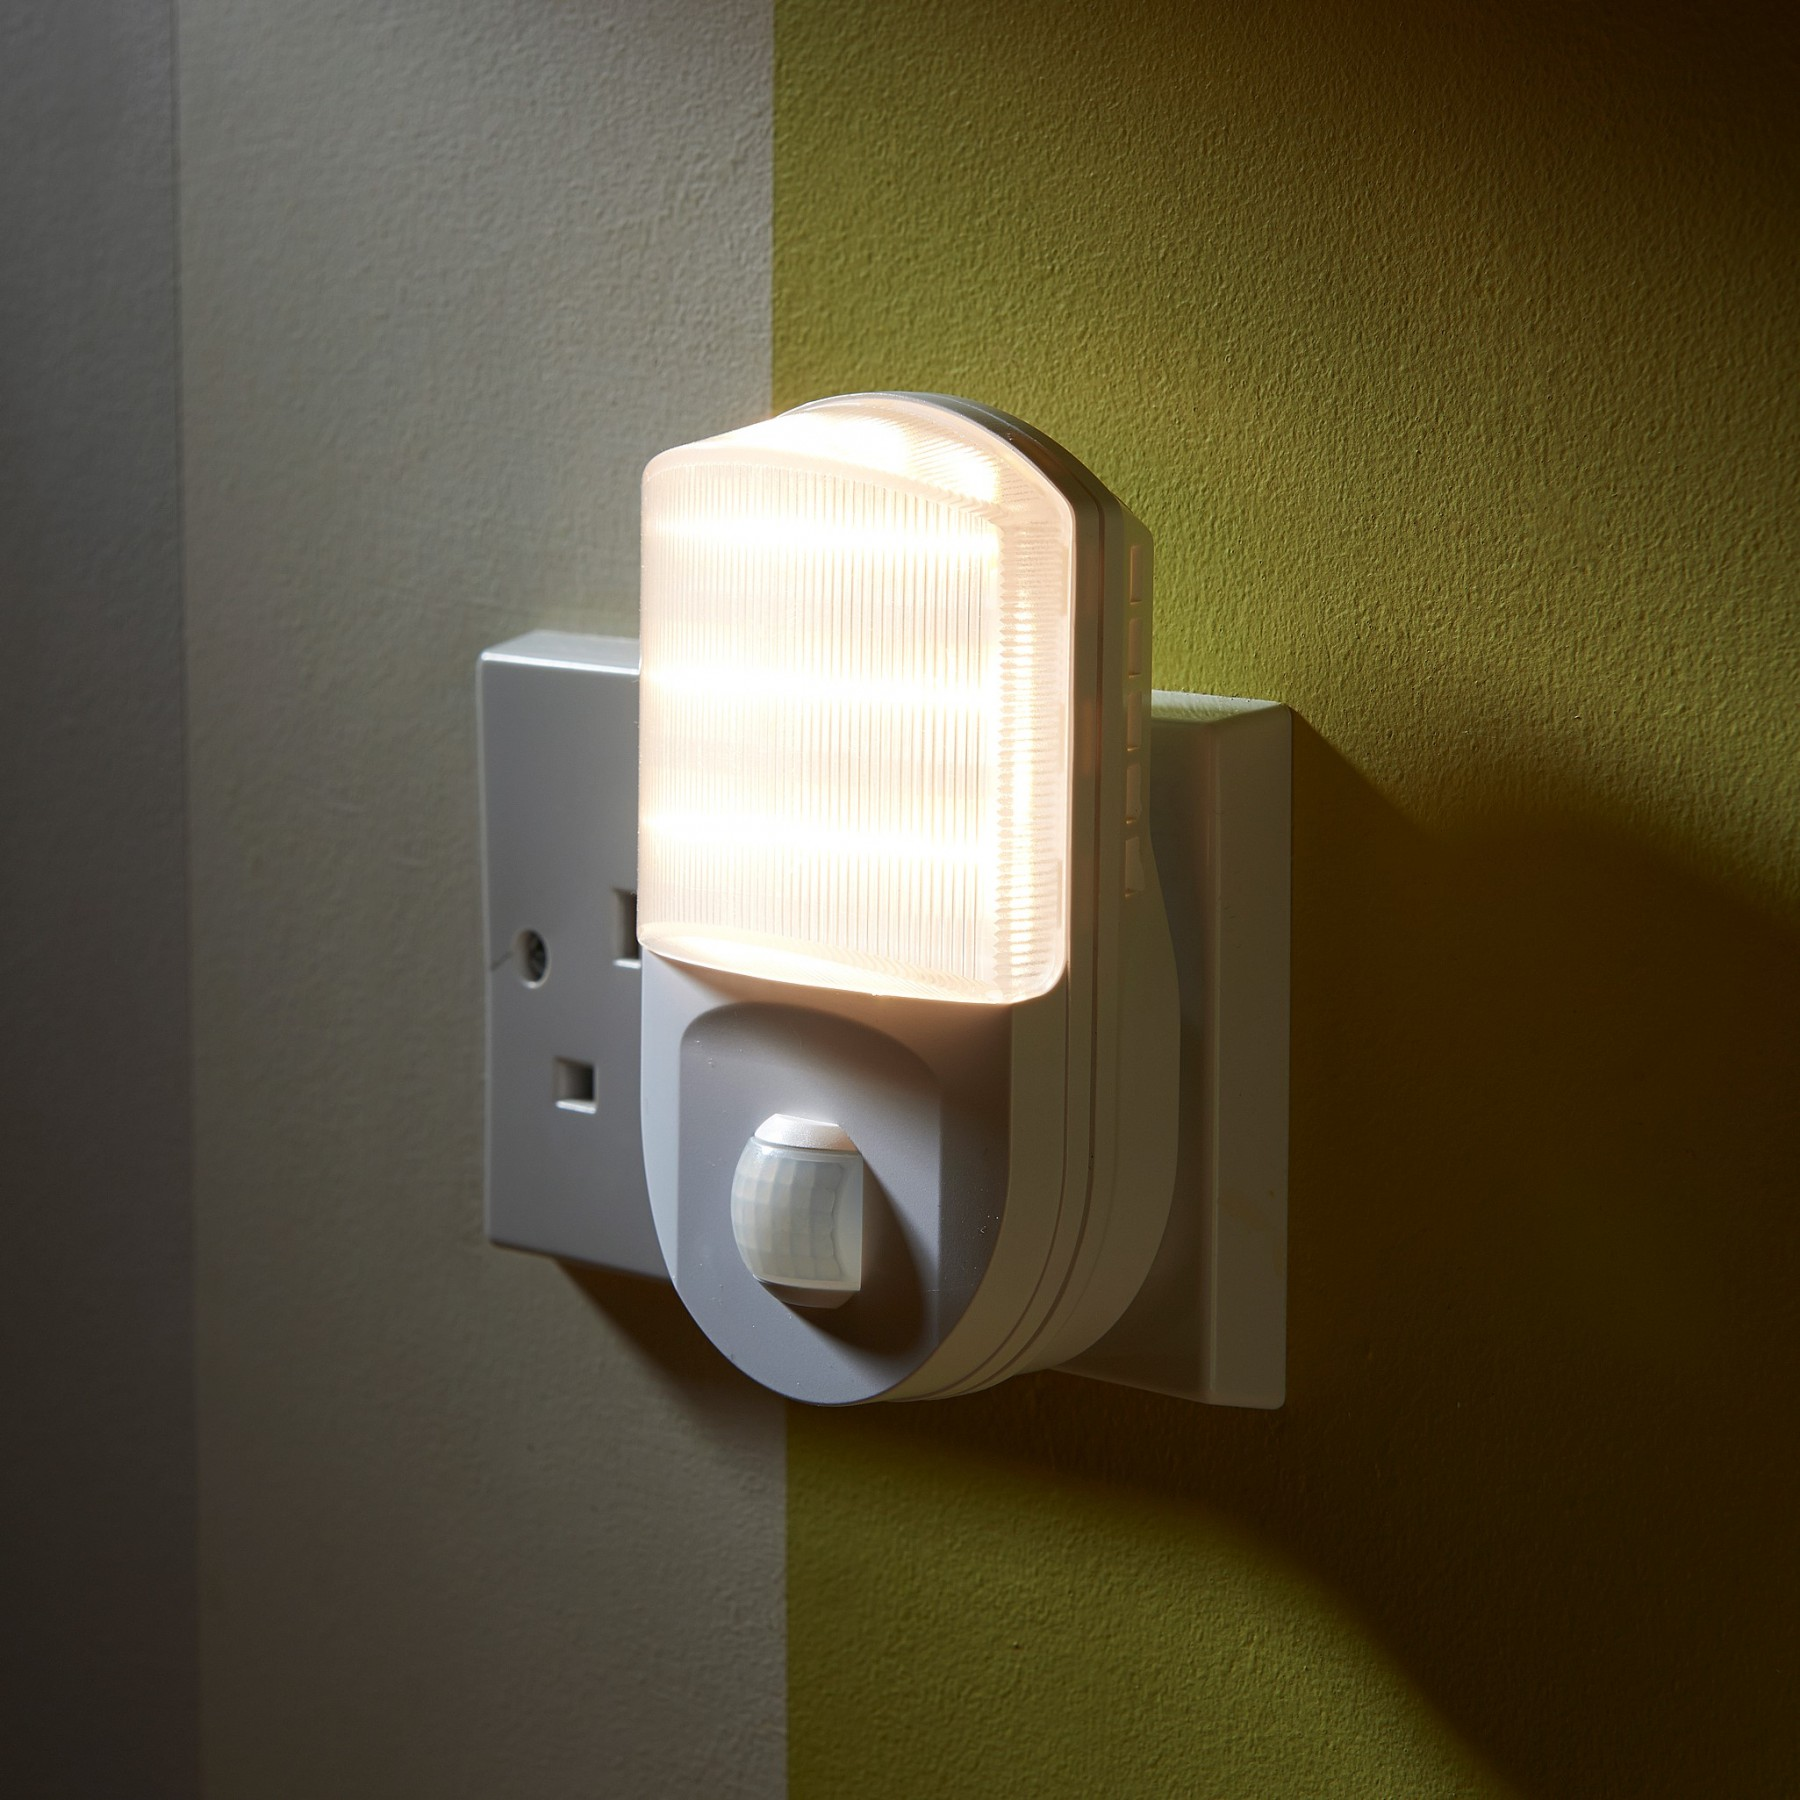 Motion Sensor Light Socket